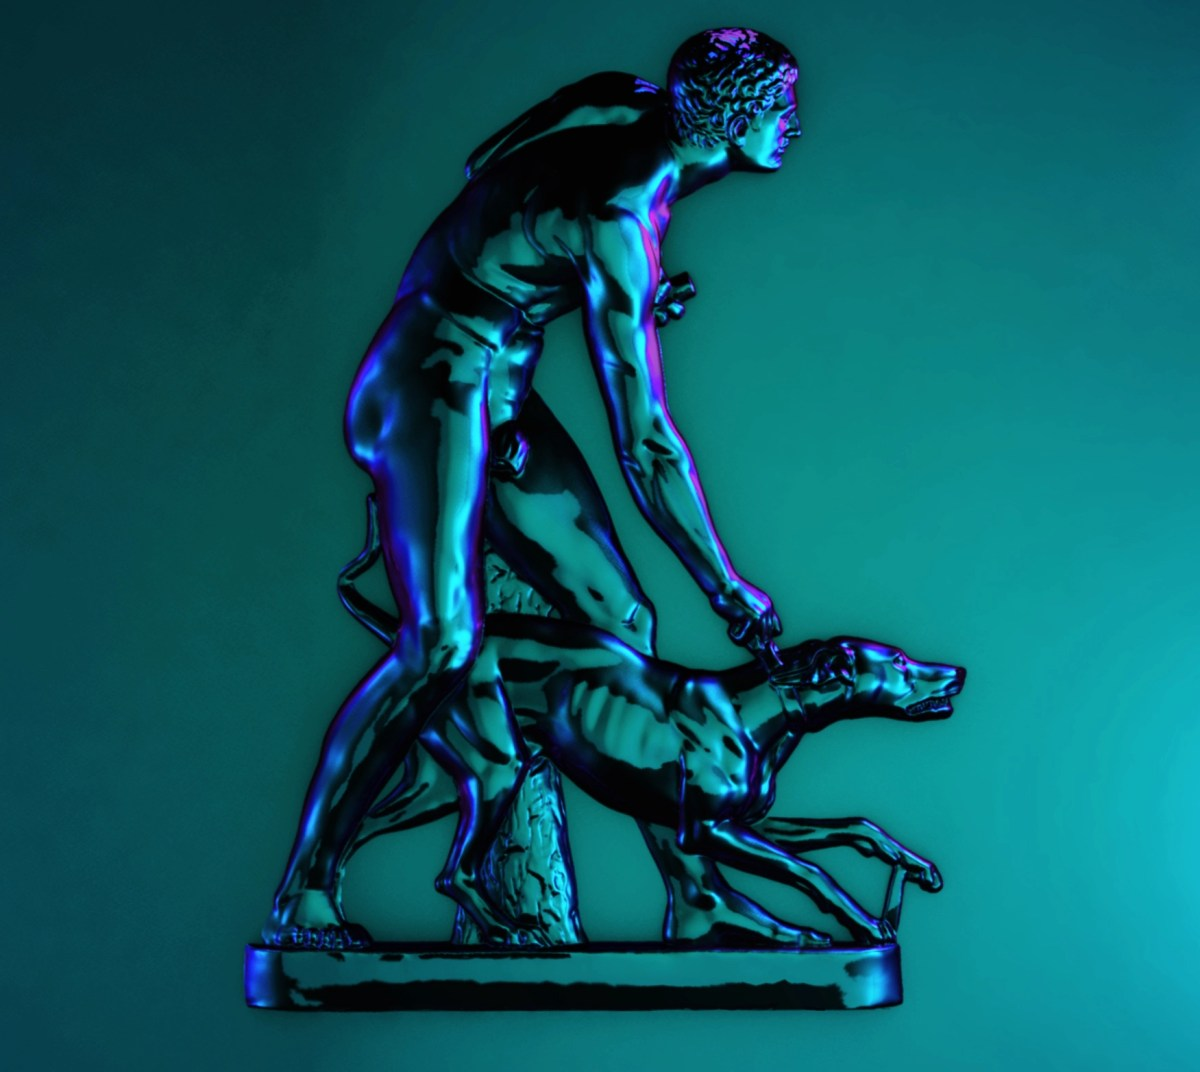 Open-source 3D scans of museum items generate amazing new creative works